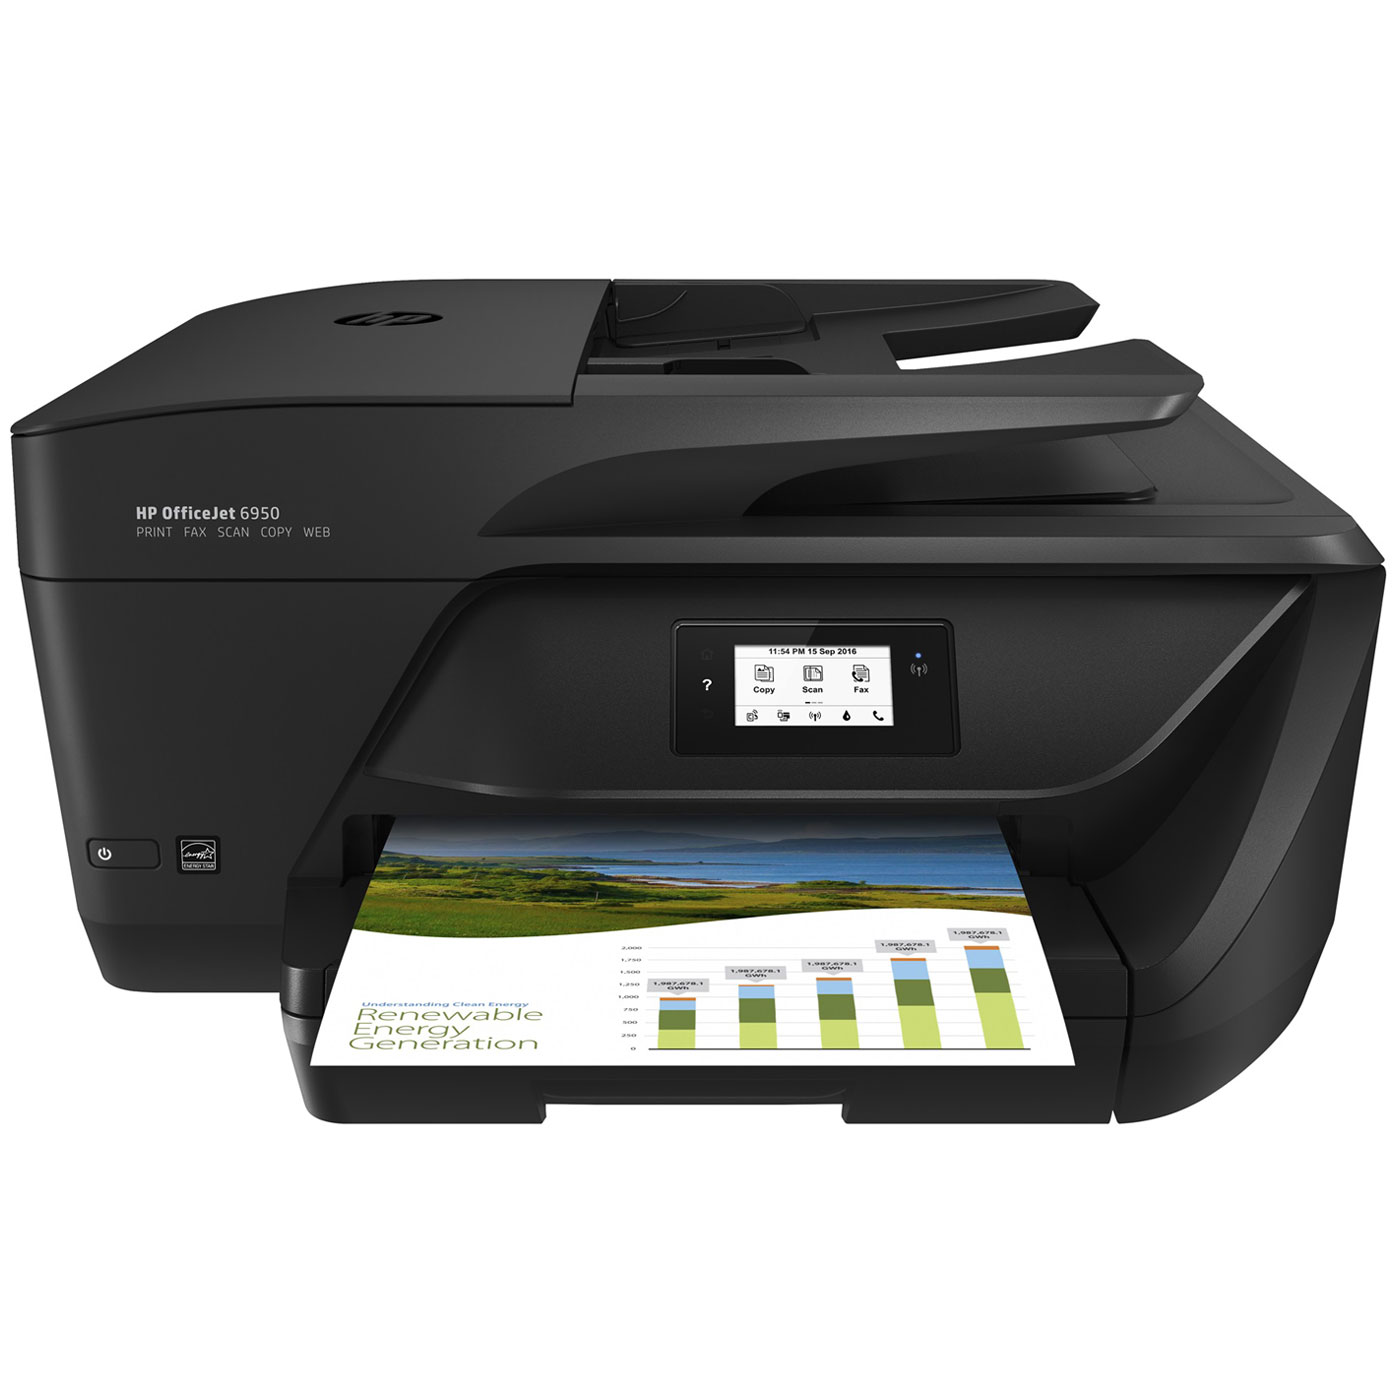 hp officejet 6950 imprimante multifonction hp sur ldlc. Black Bedroom Furniture Sets. Home Design Ideas